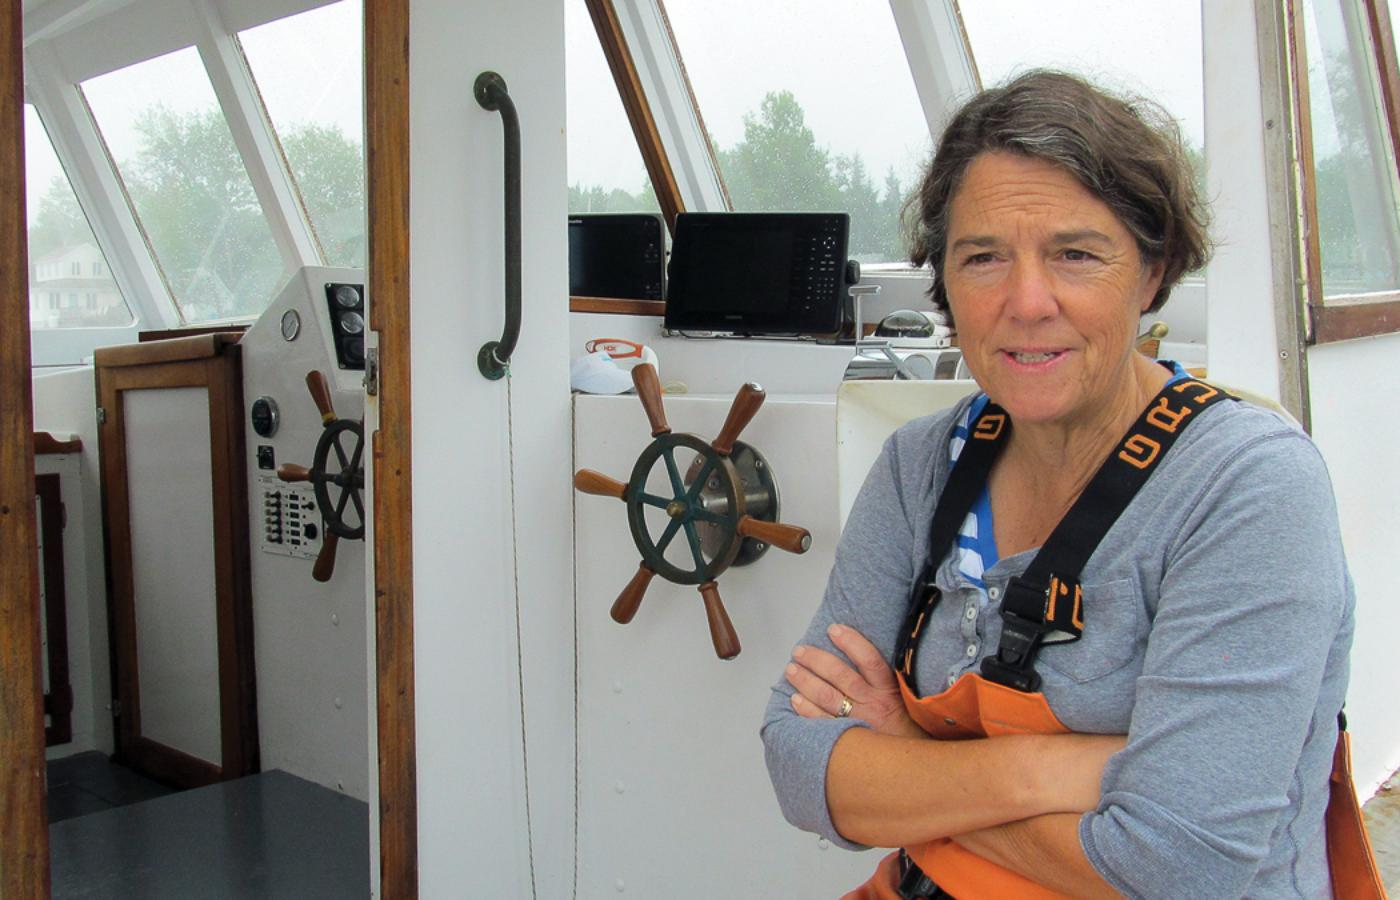 Captain Linda Greenlaw Wessel Navigates A Life At Sea